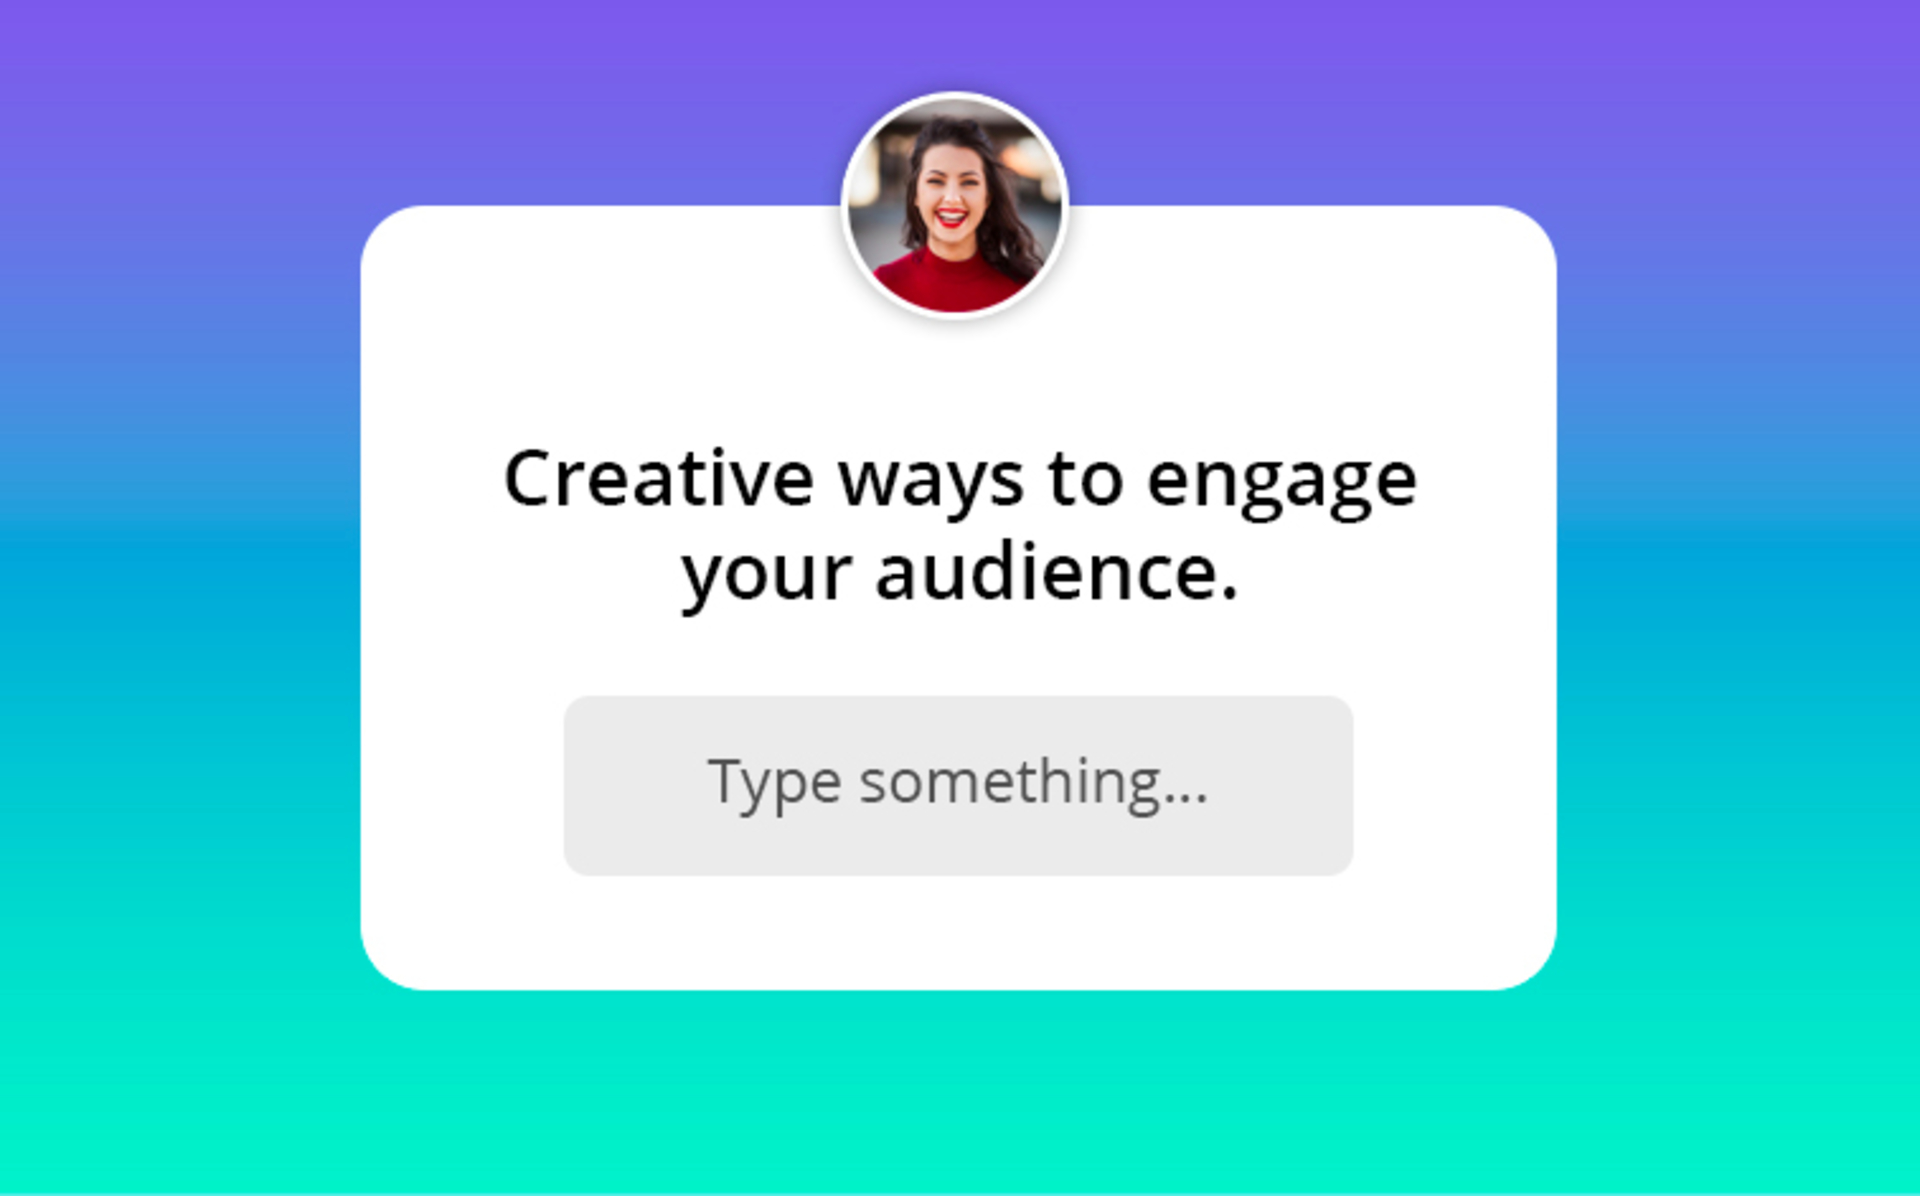 Instagram Story Questions: Creative Ways to Engage Your Audience image